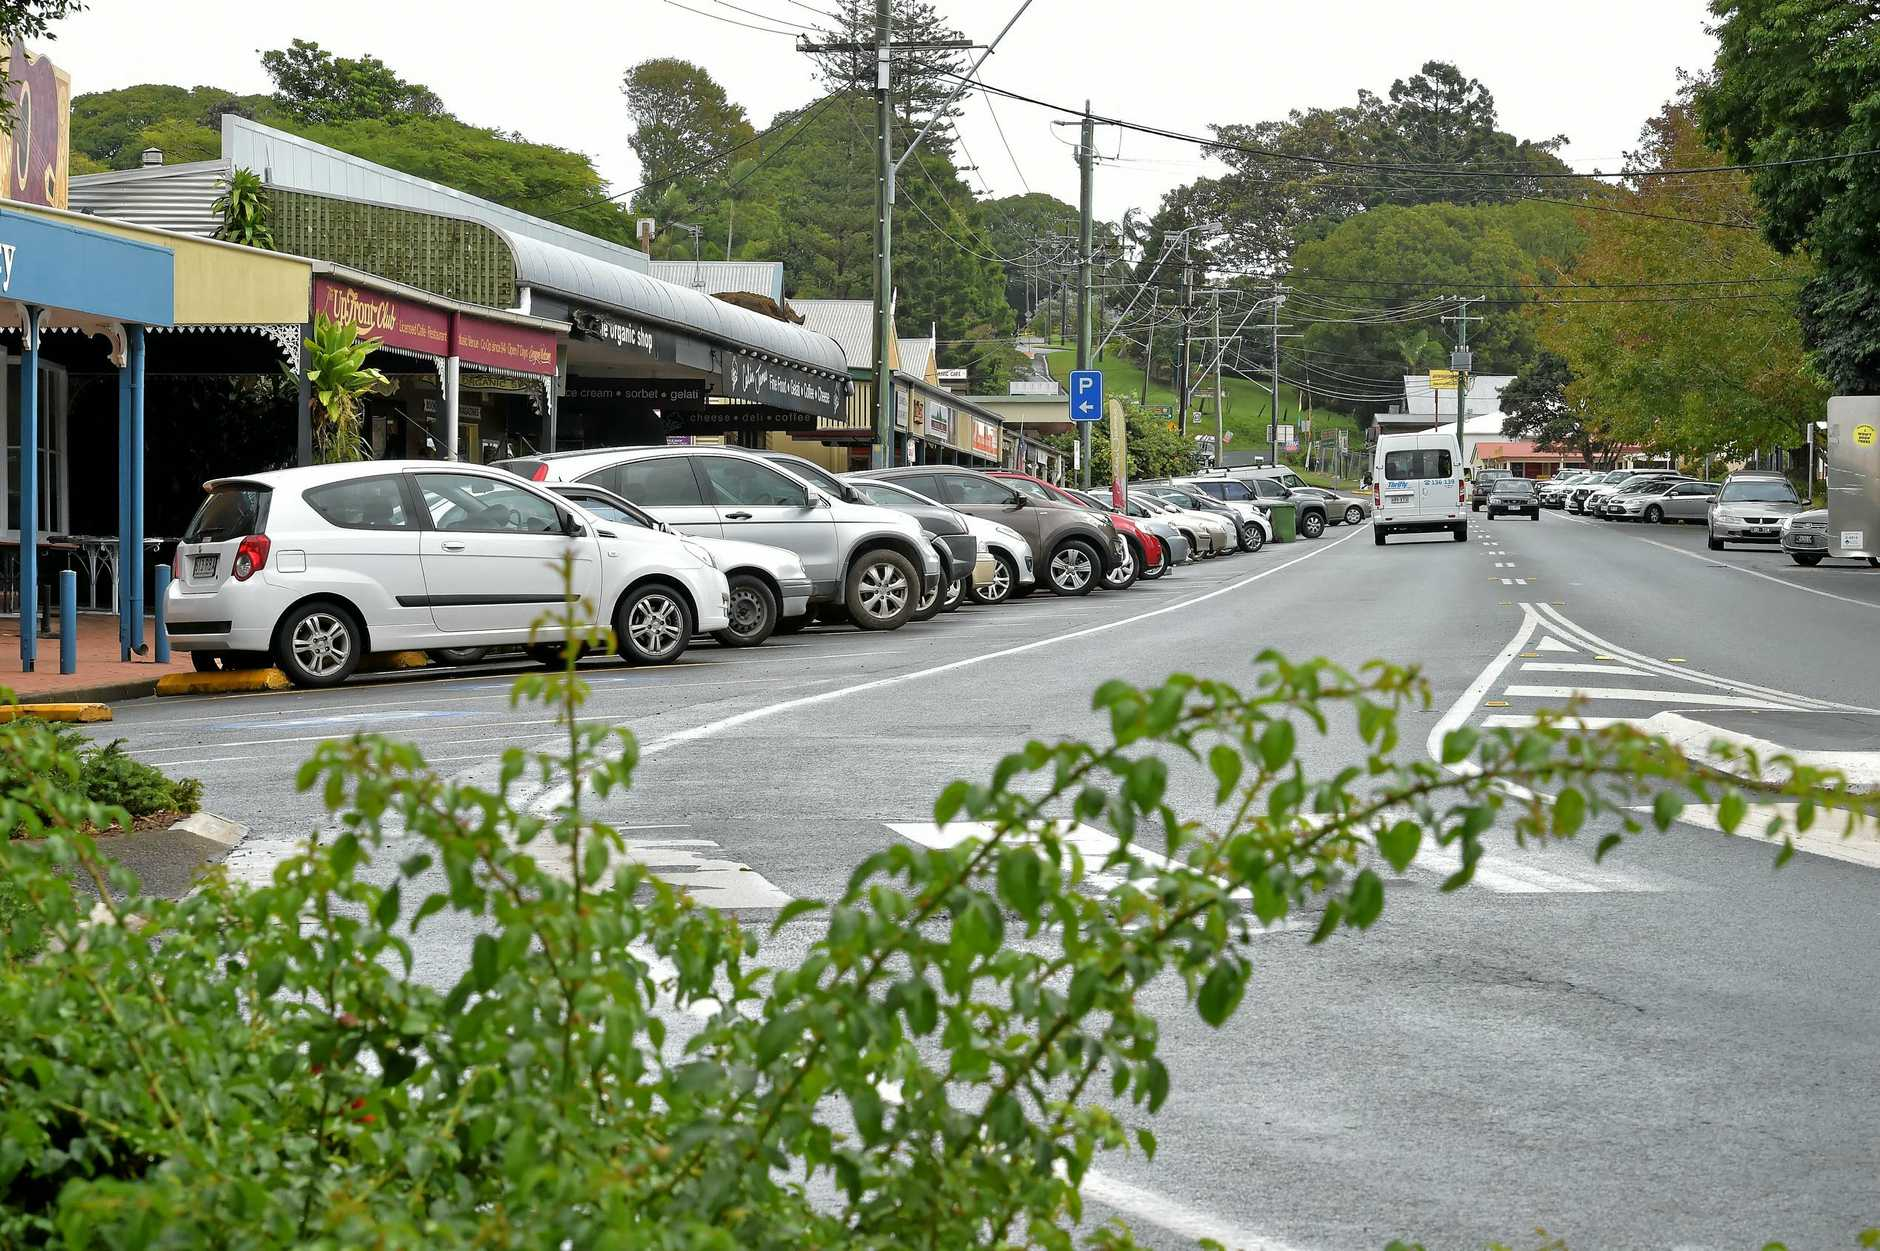 BIG NEWS: It could be the end of an era for the Hinterland's 34-year-old 'hippy bank' if the latest merger proposal goes ahead. The credit union is located on Maleny's main street, a busy shopping area for local and tourists.